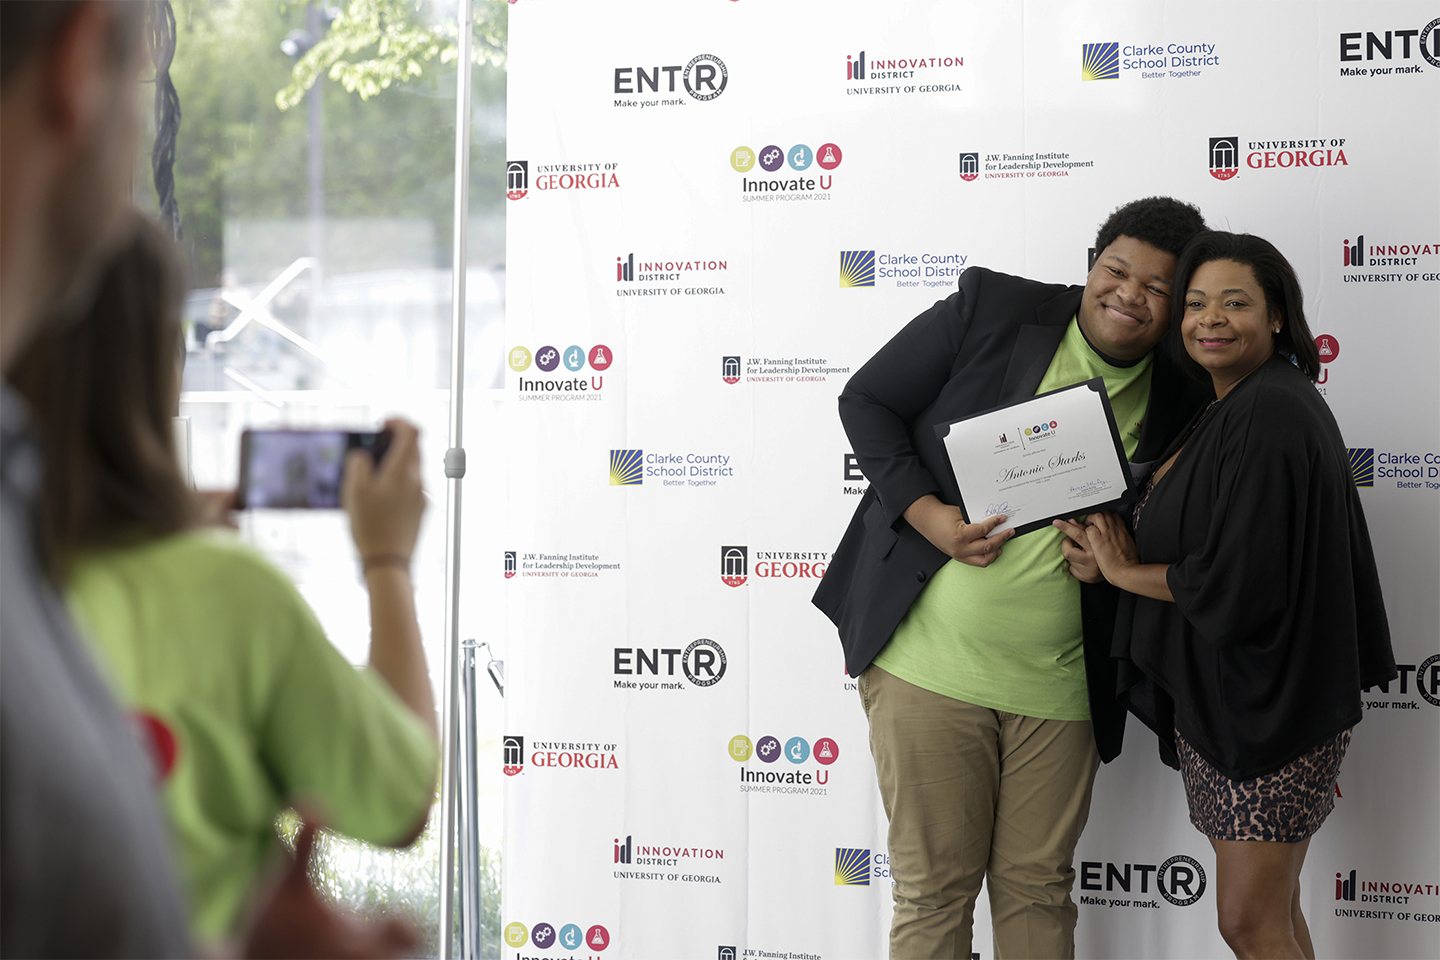 InnovateU participant Antonio Starks poses for a photo with his mother, Ty Starks.